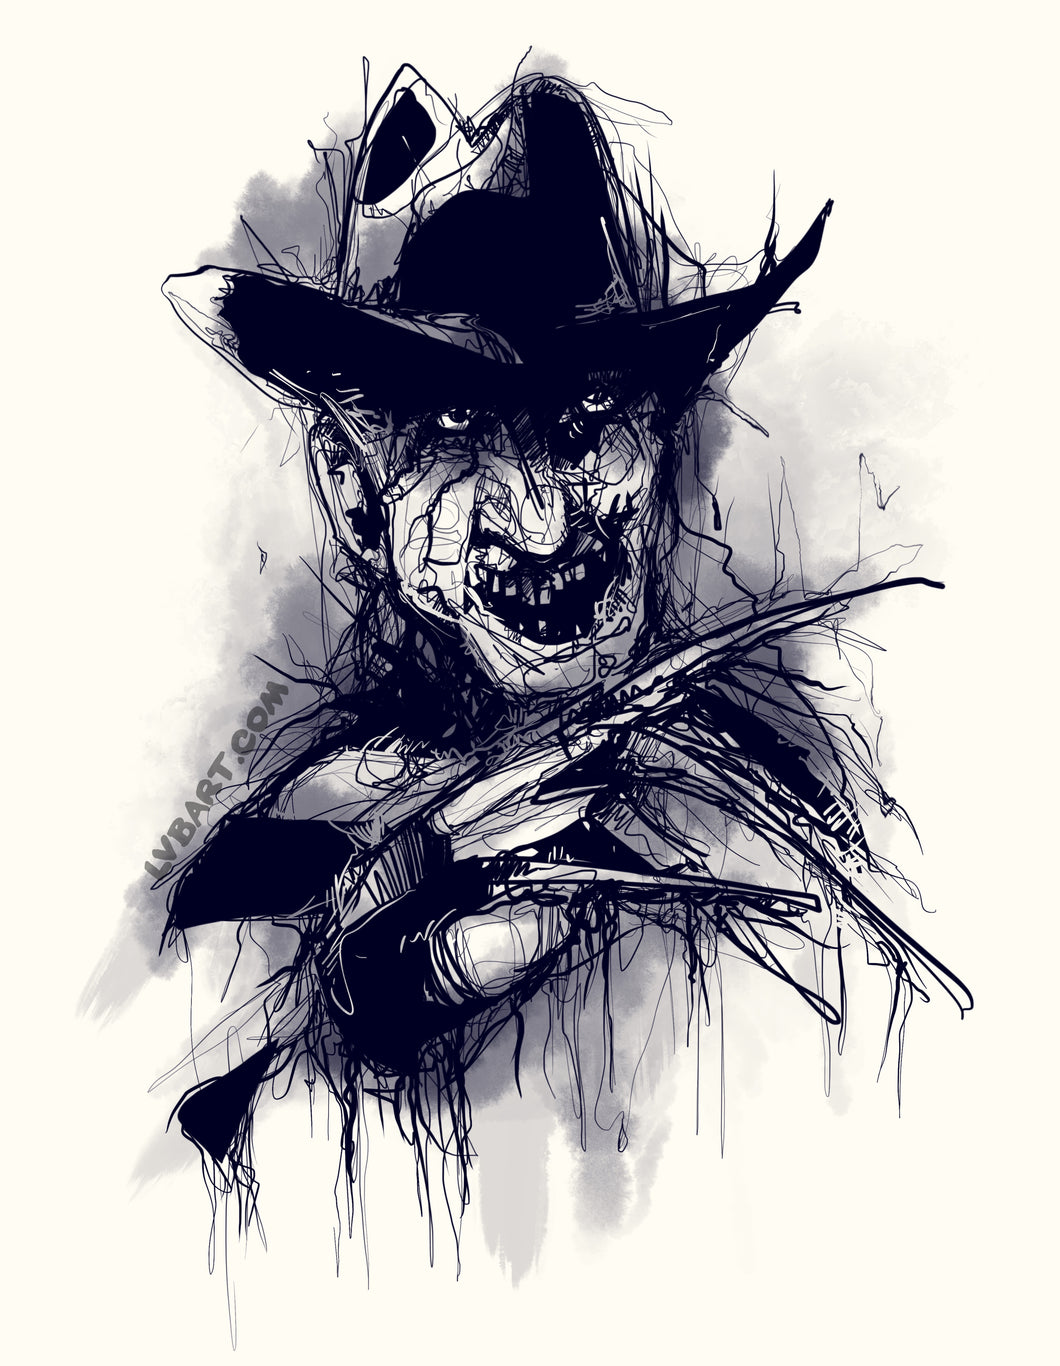 Scary Stories To Tell In The Dark; The Groundskeeper Fine Art Print